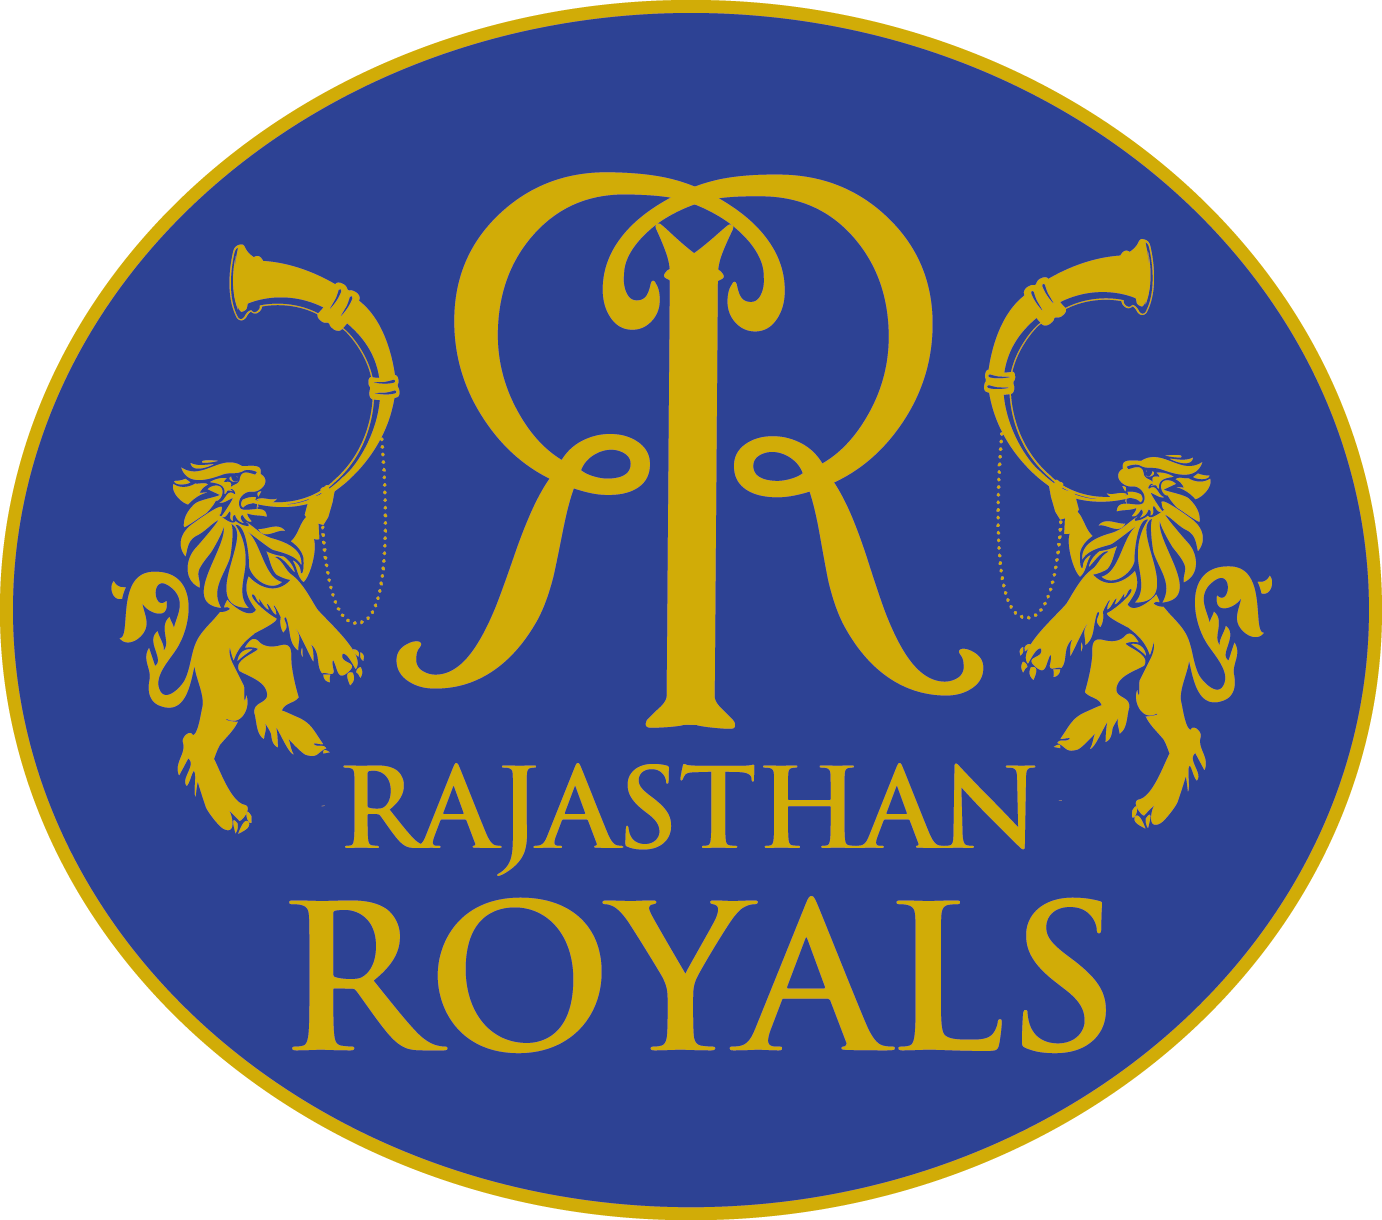 Rajasthan Royals Theme Song Free Download: Rajasthan Royals Logo Vector [rajasthanroyals.com] Vector